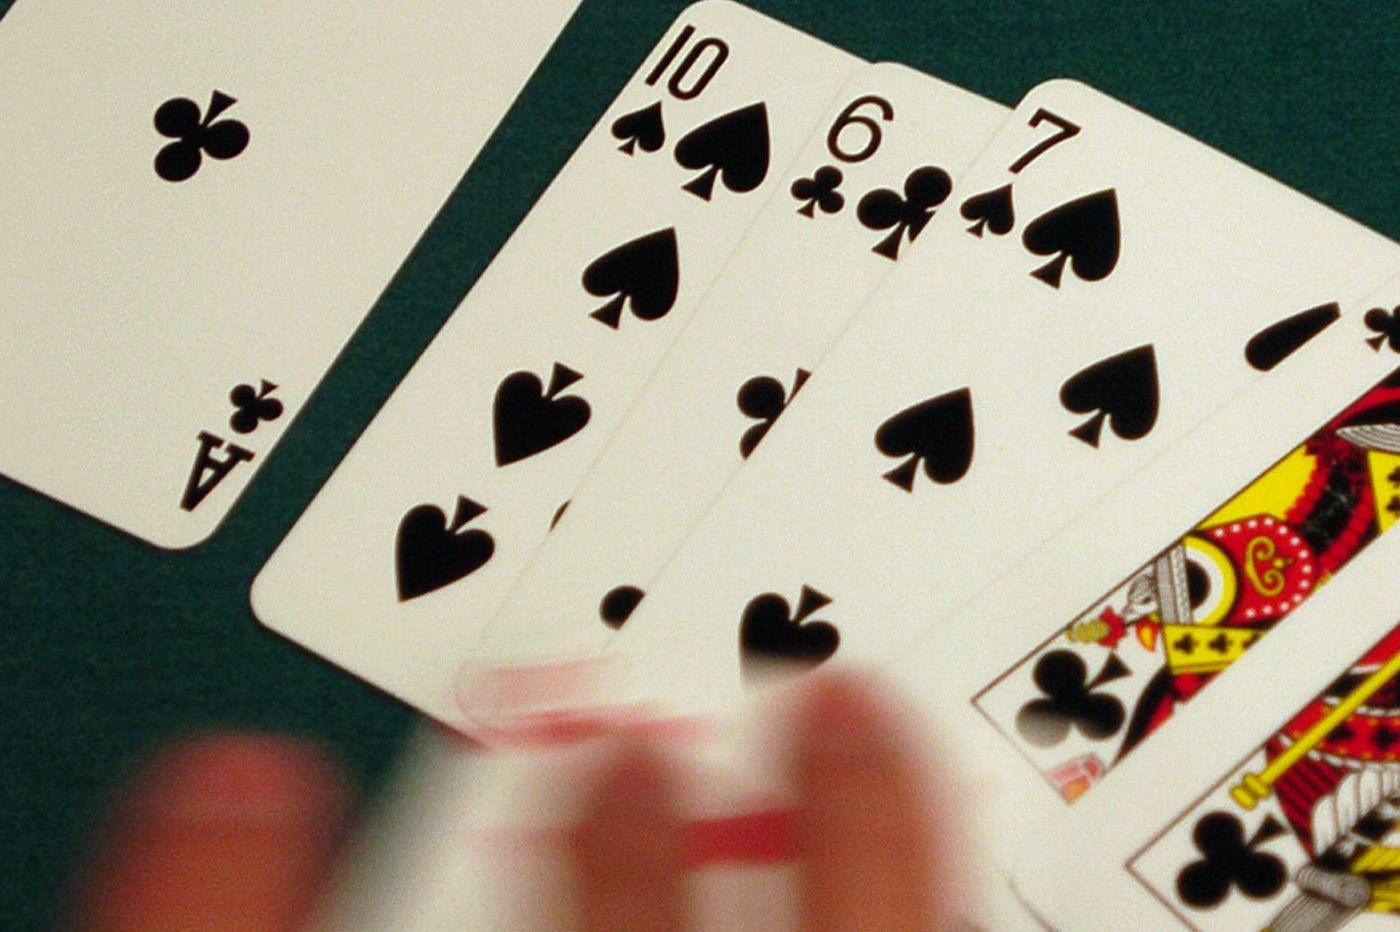 Explore the licensed casinos if you are ready to perform online gambling and earn profits in bets.